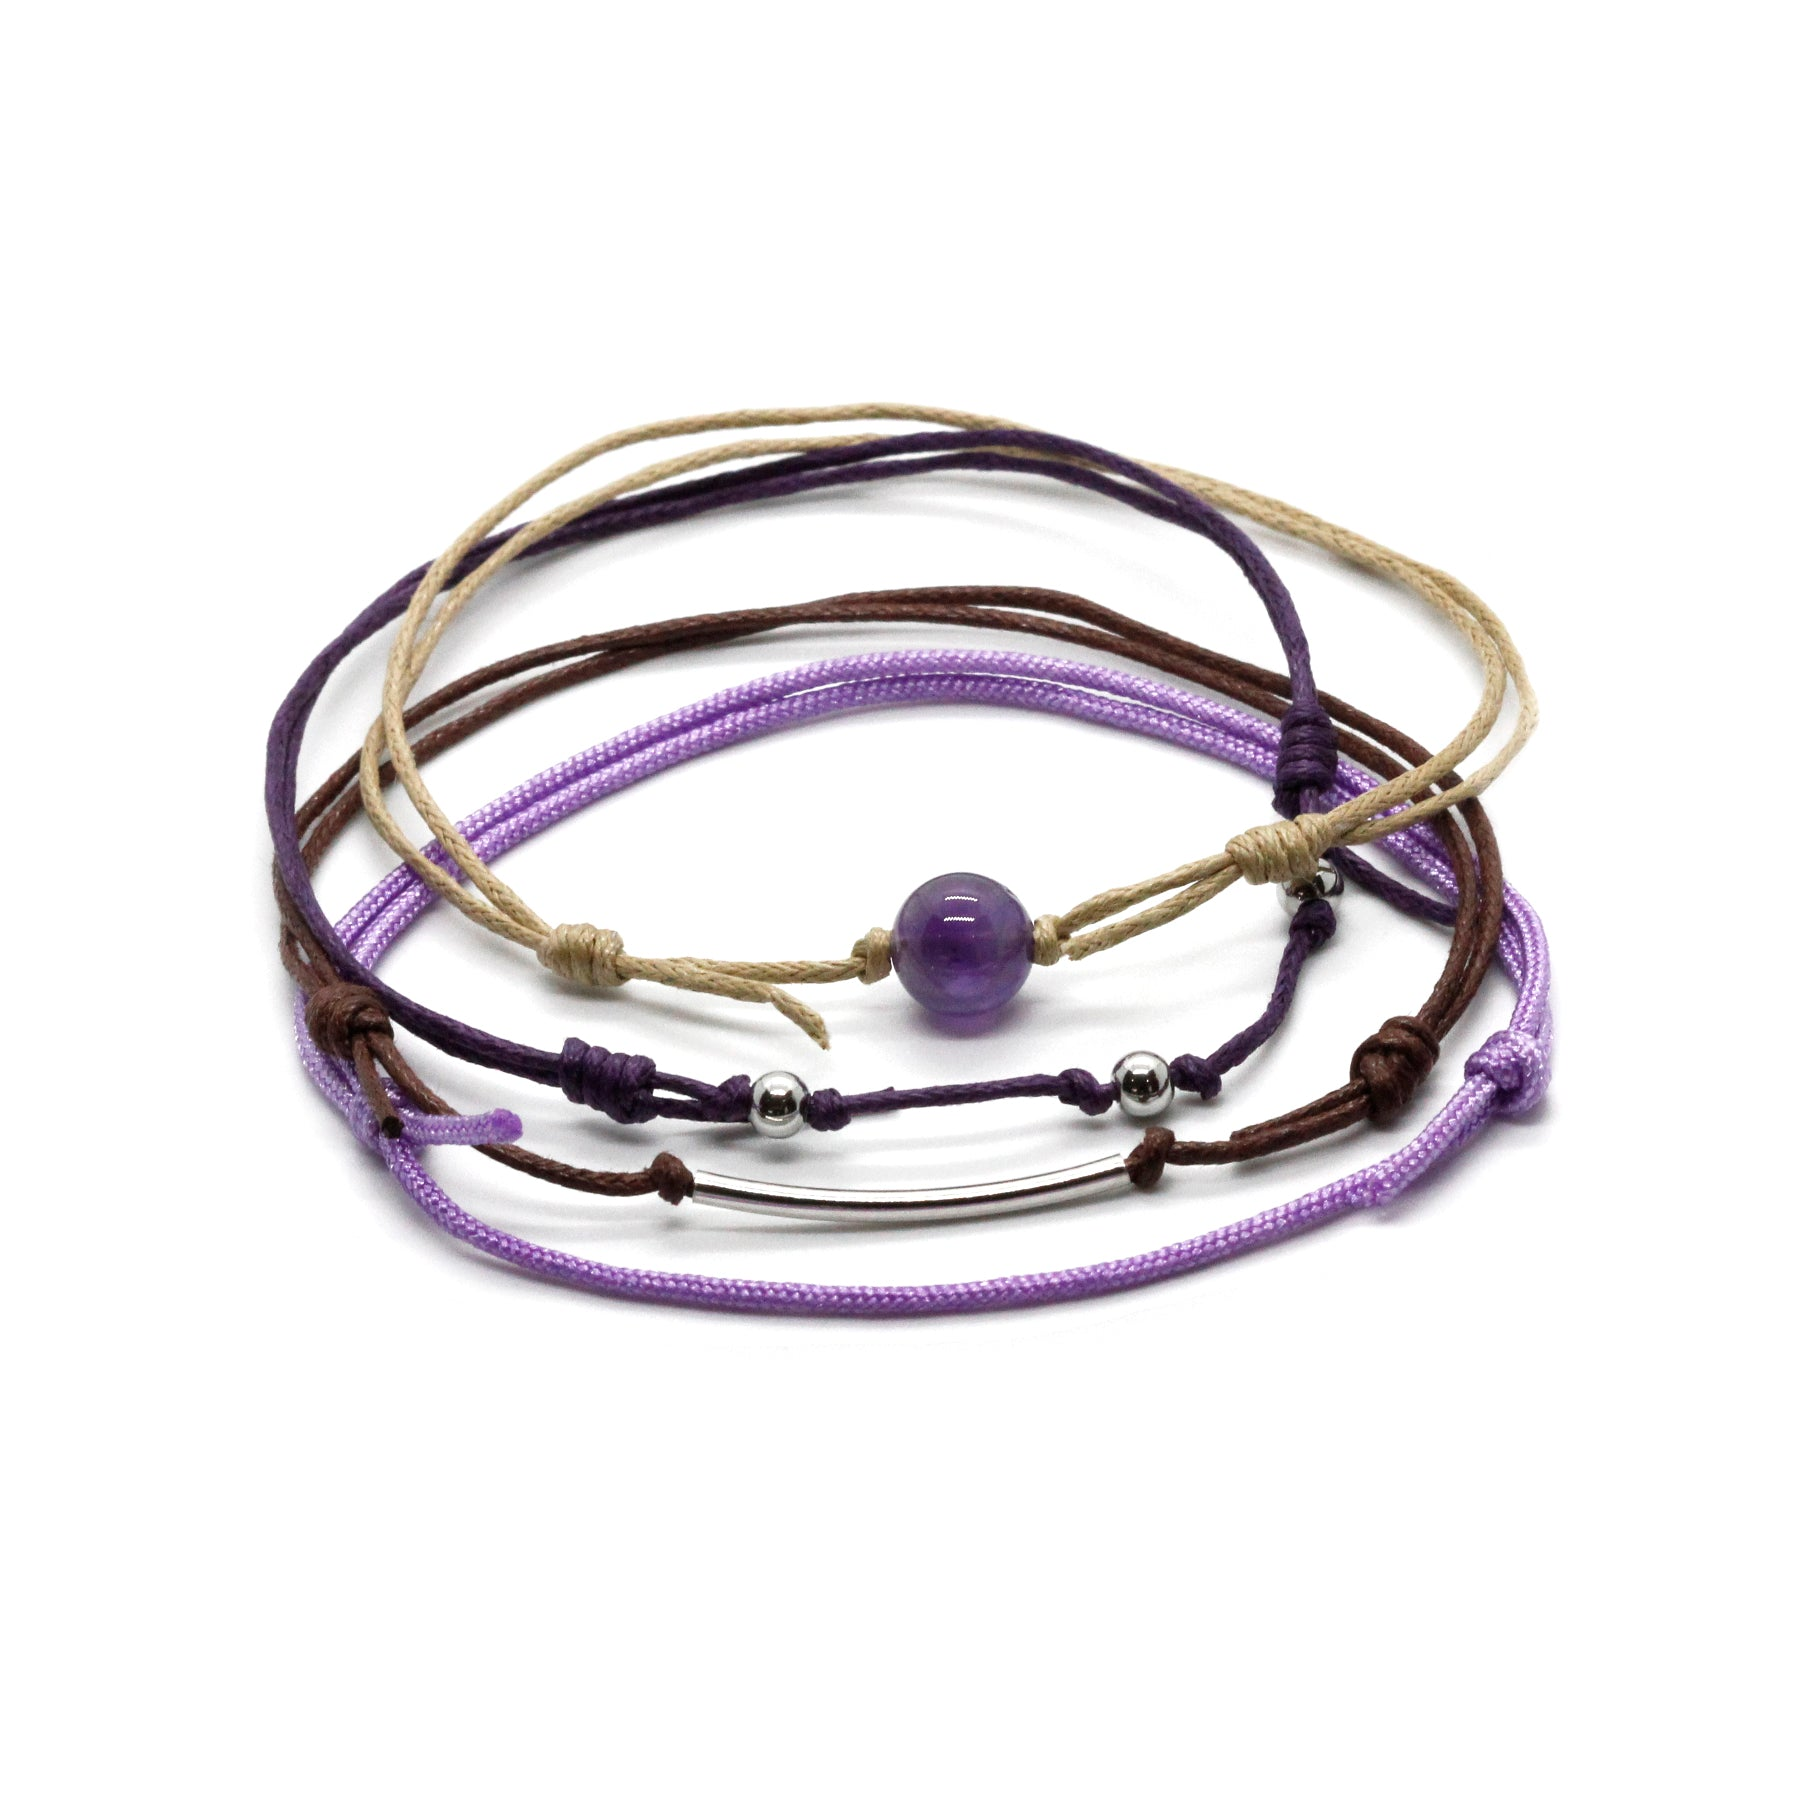 Amethyst Gemstone Anklet - 4 Piece Set - O Yeah Gifts!